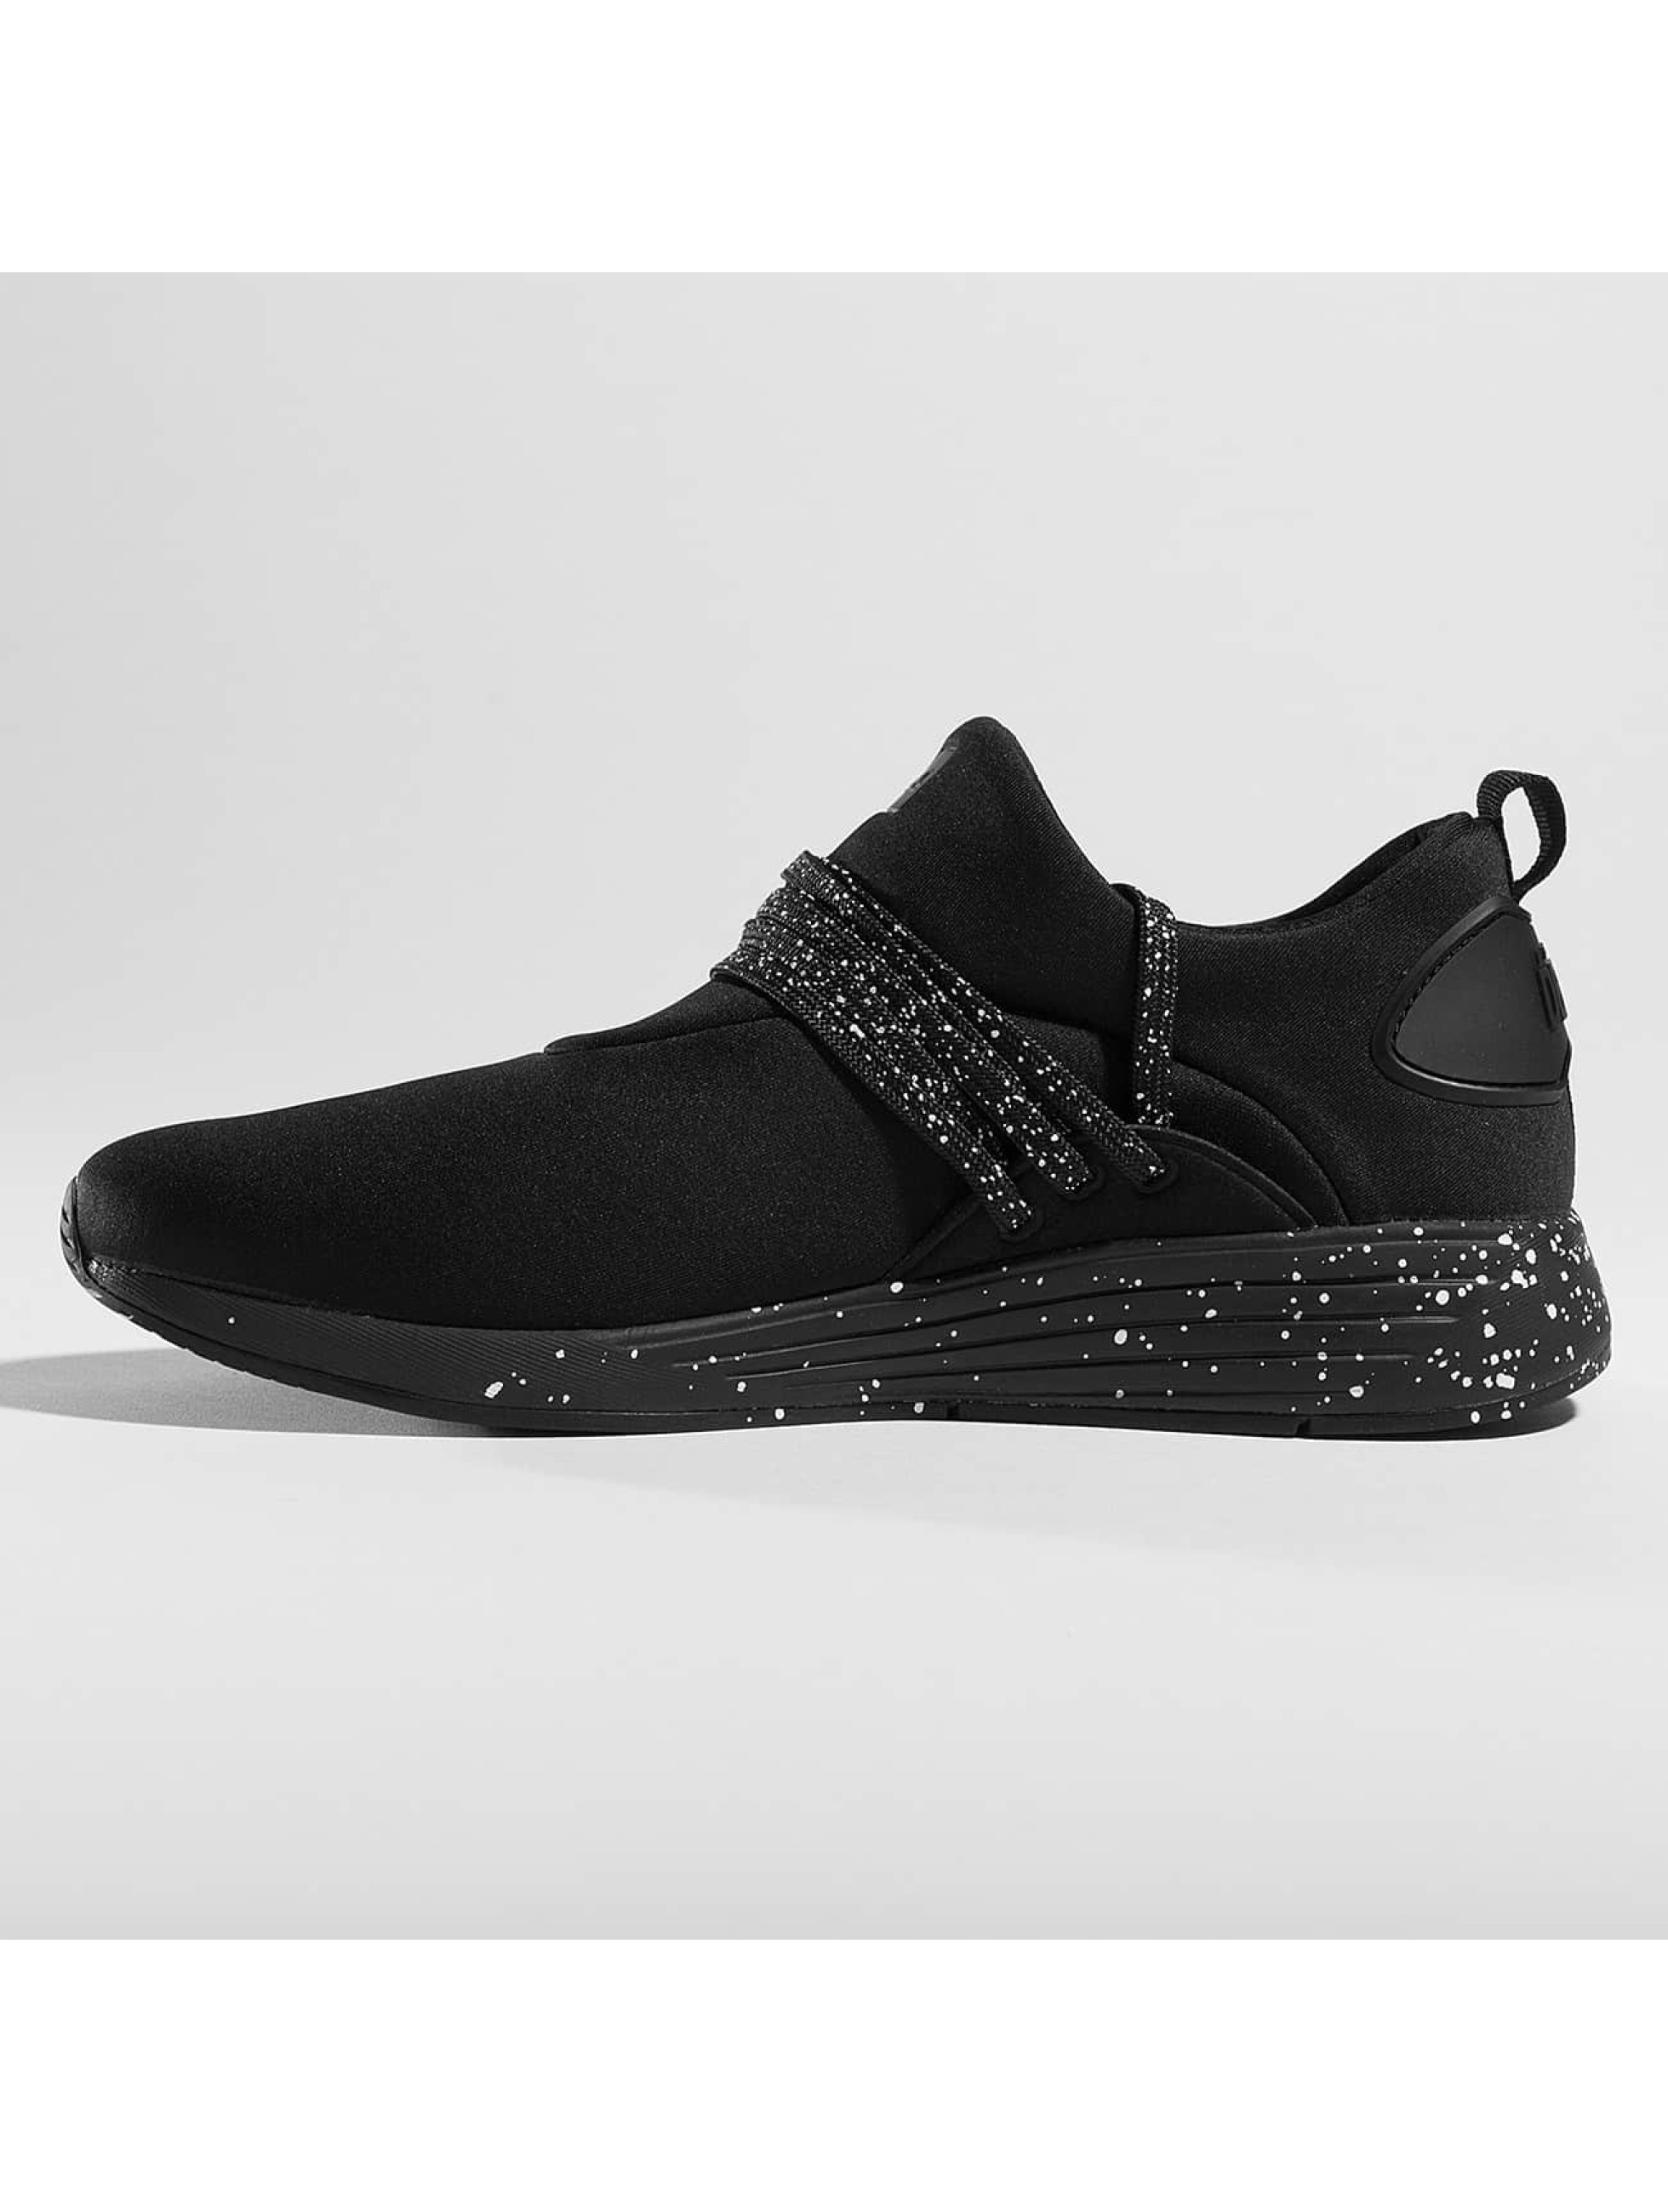 Project Delray Sneakers Project Delray Wavey black